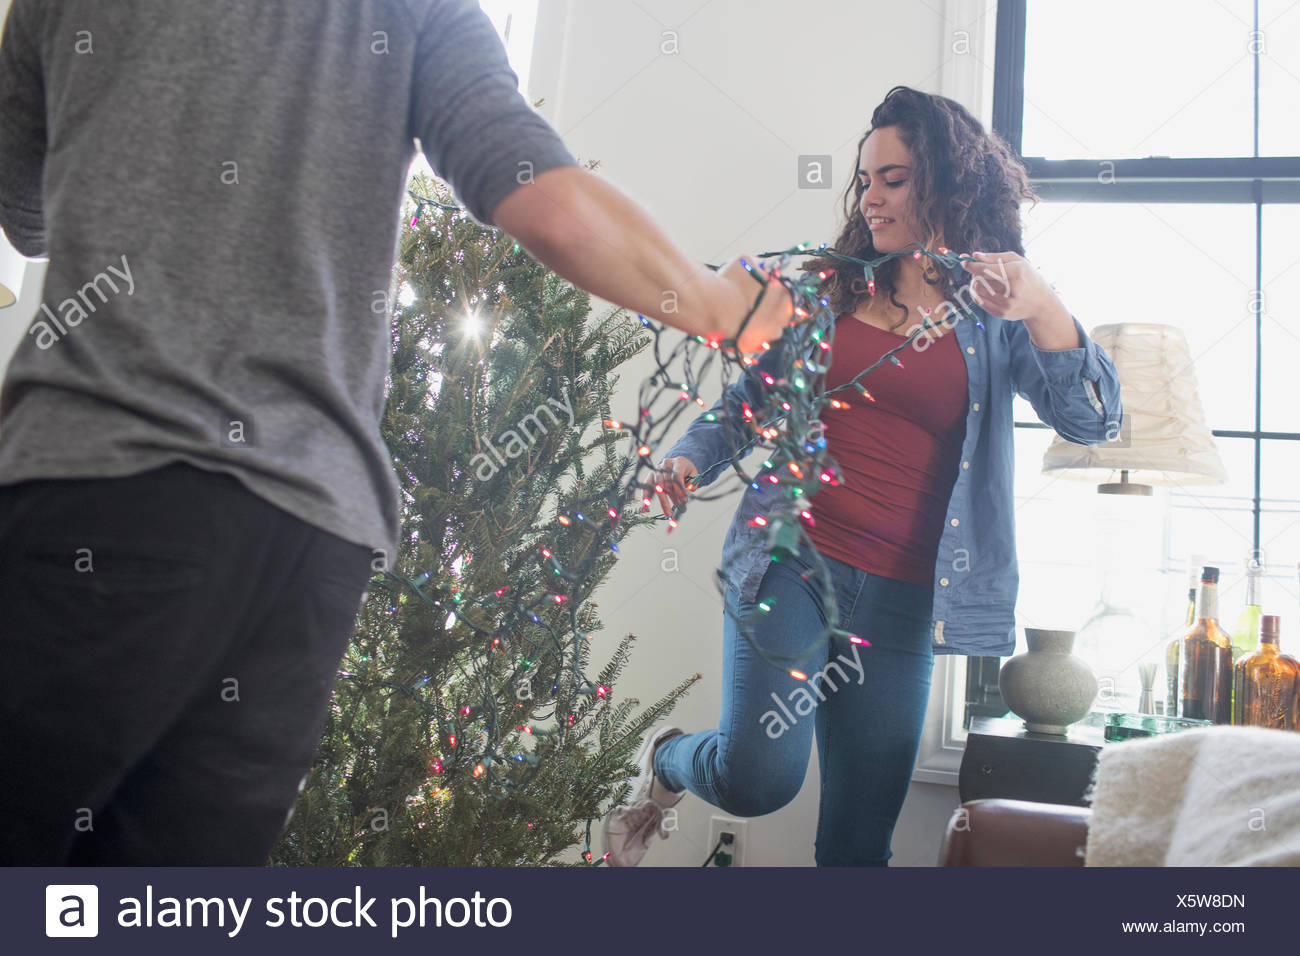 A young woman and man decorating a Christmas tree - Stock Image